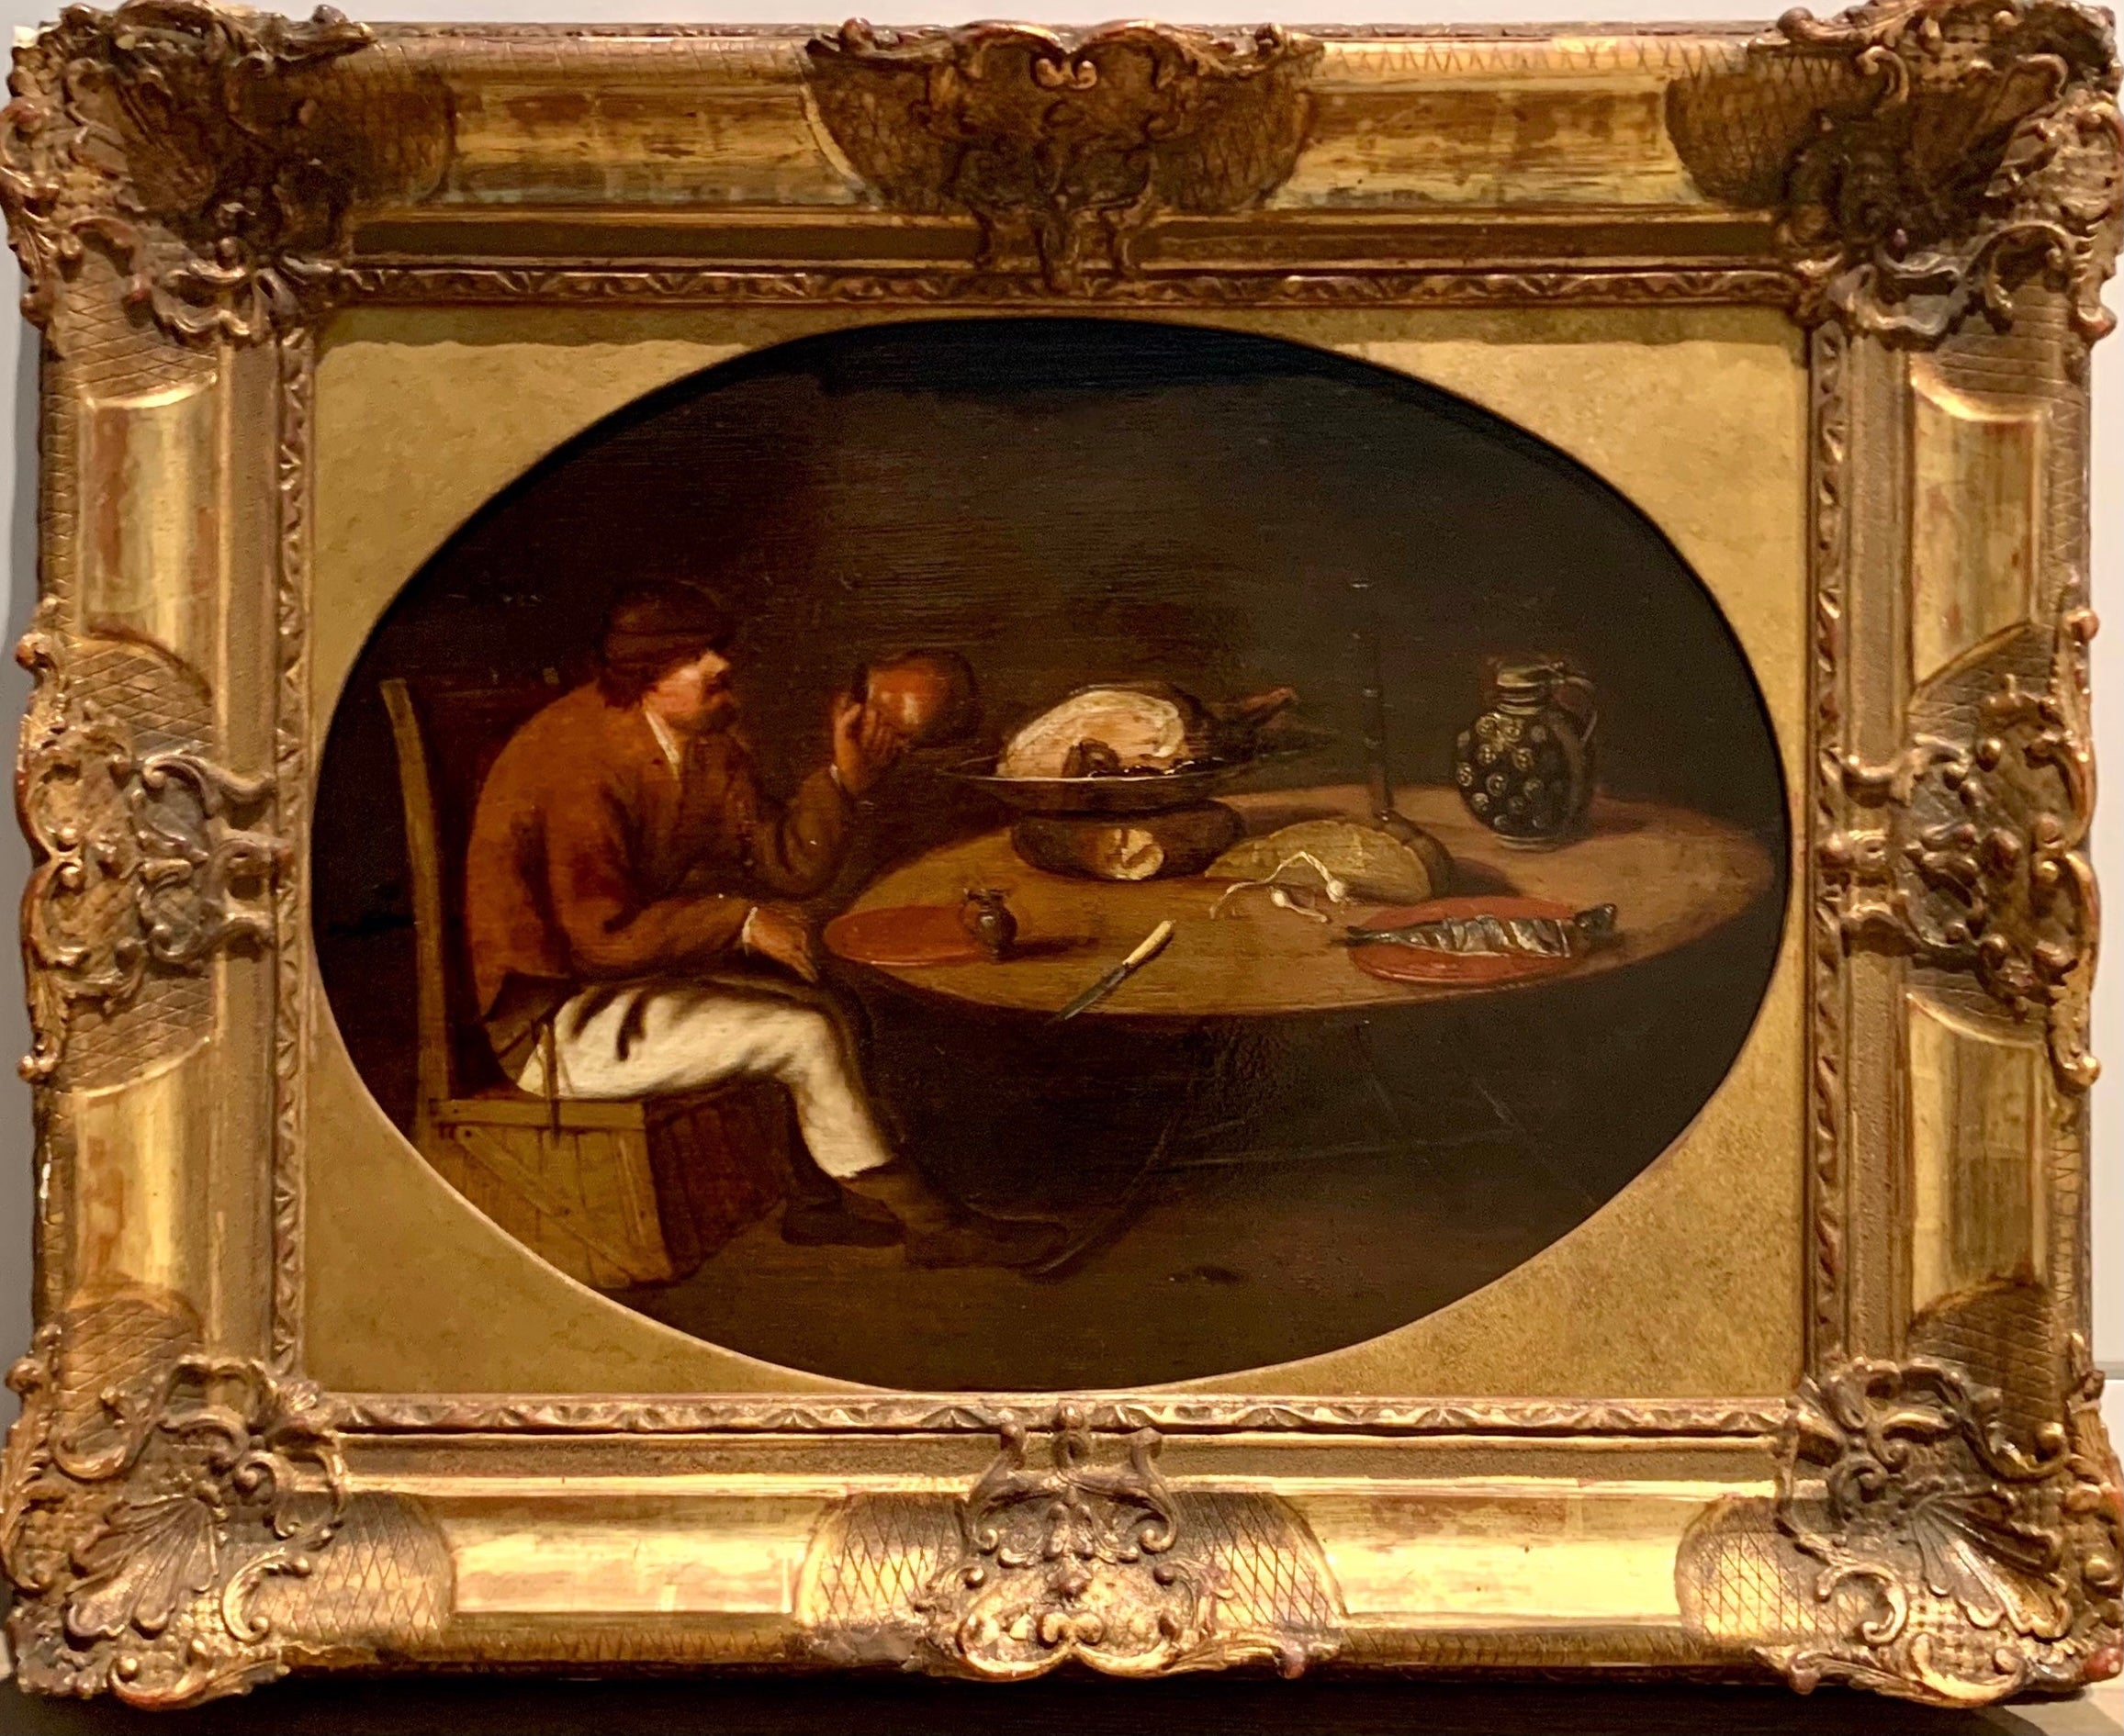 Flemish Old Master painting - A breugellian meal - Still-life Wine Feast